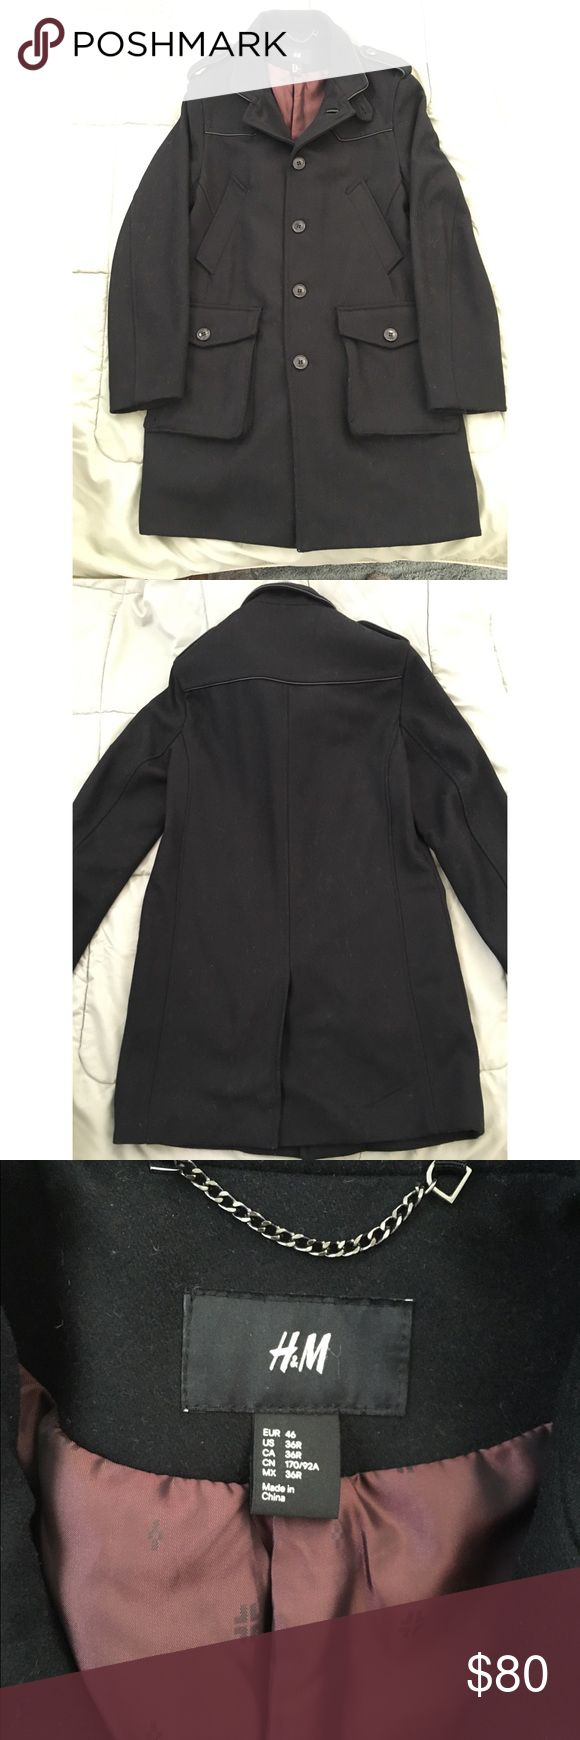 H&M men's black military peacoat On sale for $30 for a limited time! Rarely worn, very clean men's H&M Black Military style Peacoat in size small. Great tailored fit. H&M Jackets & Coats Pea Coats